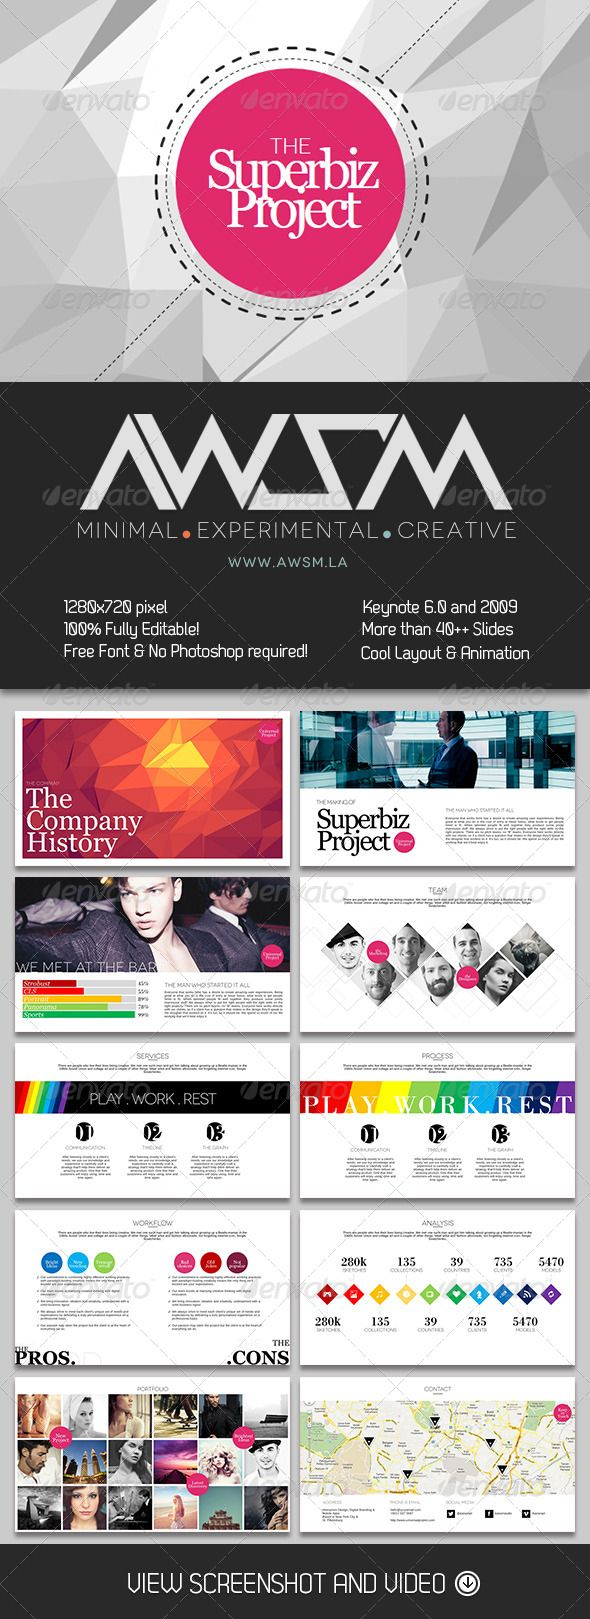 62 best ppt template images on pinterest ppt template the superbiz powerpoint presentation template by awsm is a highly visual layout with lots of white space for readability toneelgroepblik Image collections